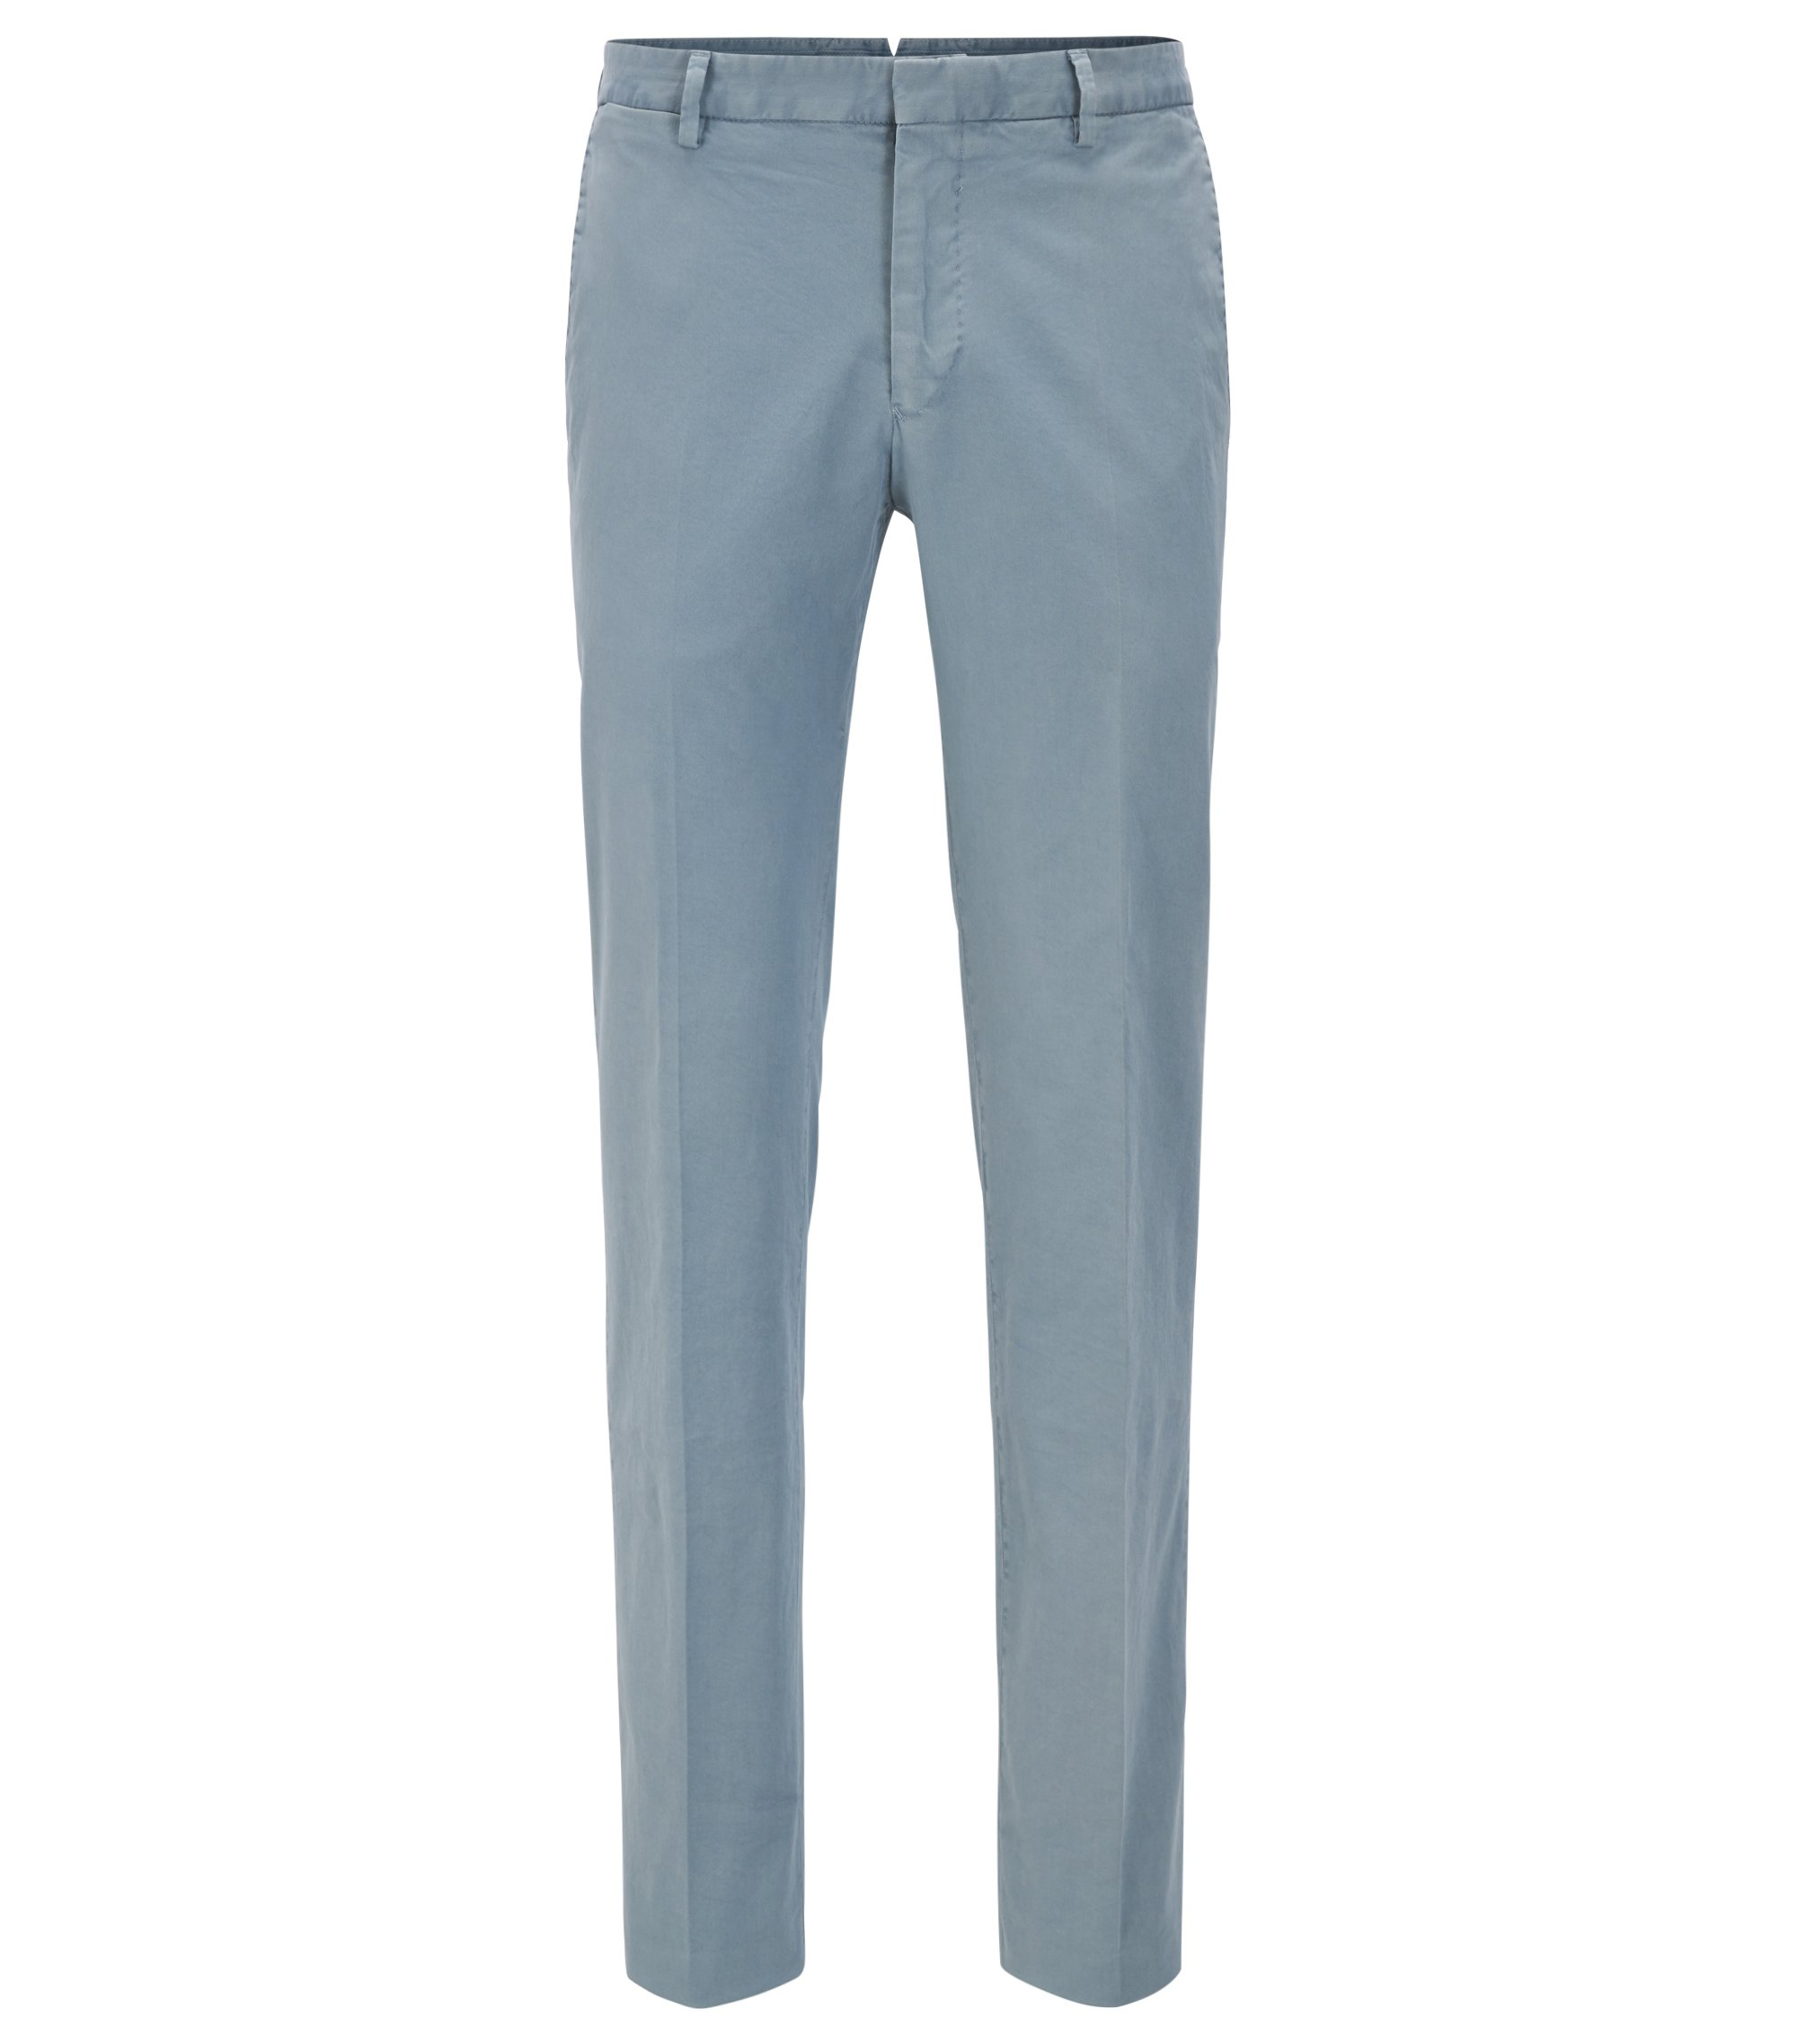 Pantalon Slim Fit en coton stretch teint en pièce, Gris